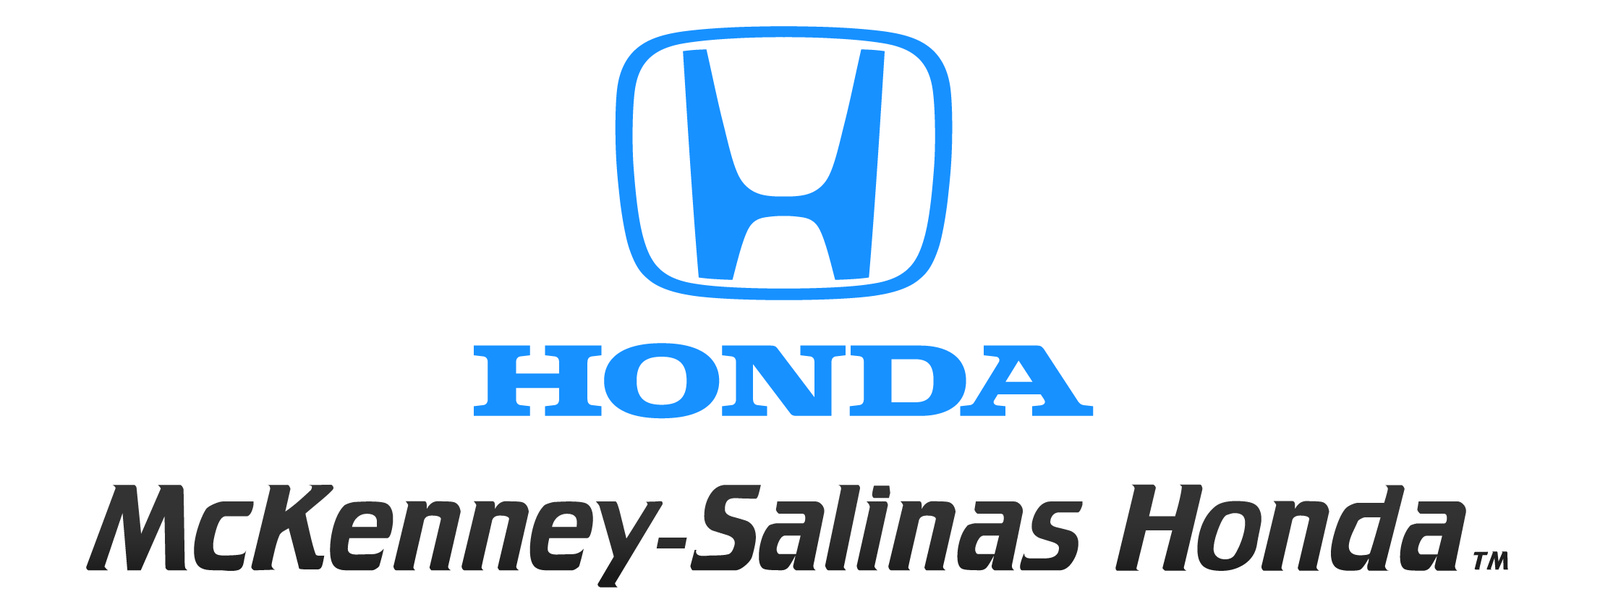 mckenney salinas honda gastonia nc read consumer reviews browse used and new cars for sale. Black Bedroom Furniture Sets. Home Design Ideas